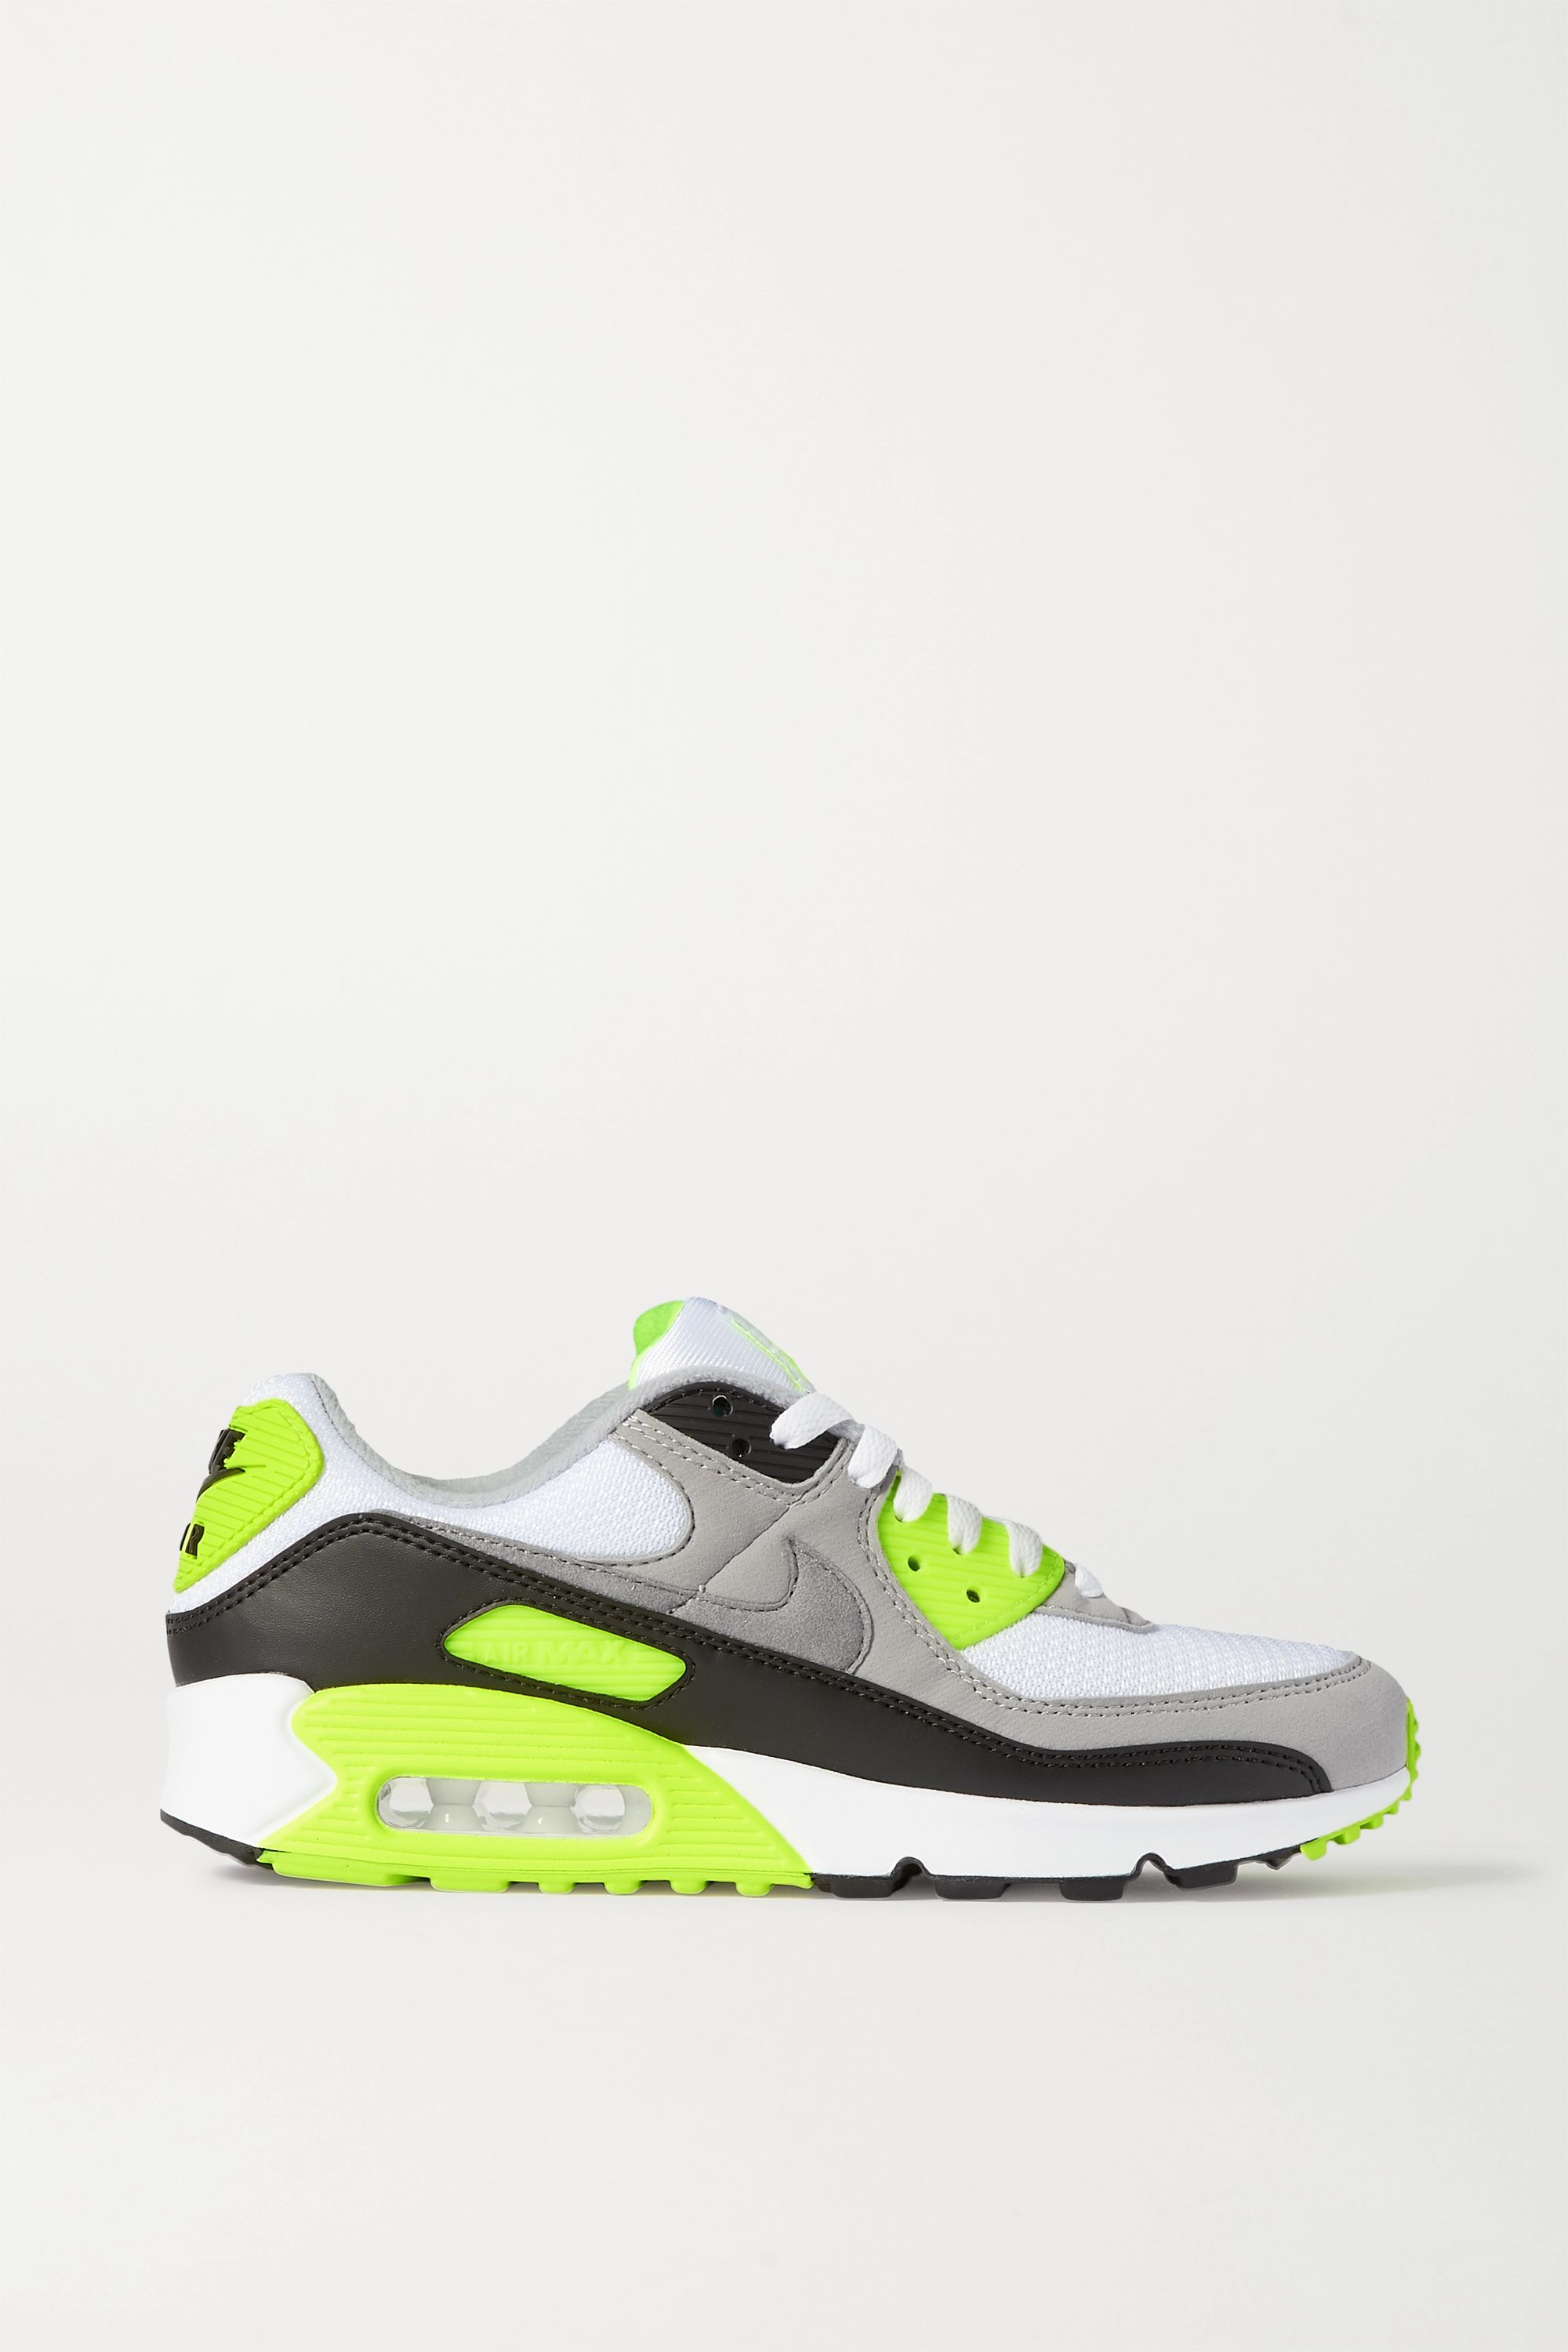 Nike Air Max 90 leather, suede and mesh sneakers